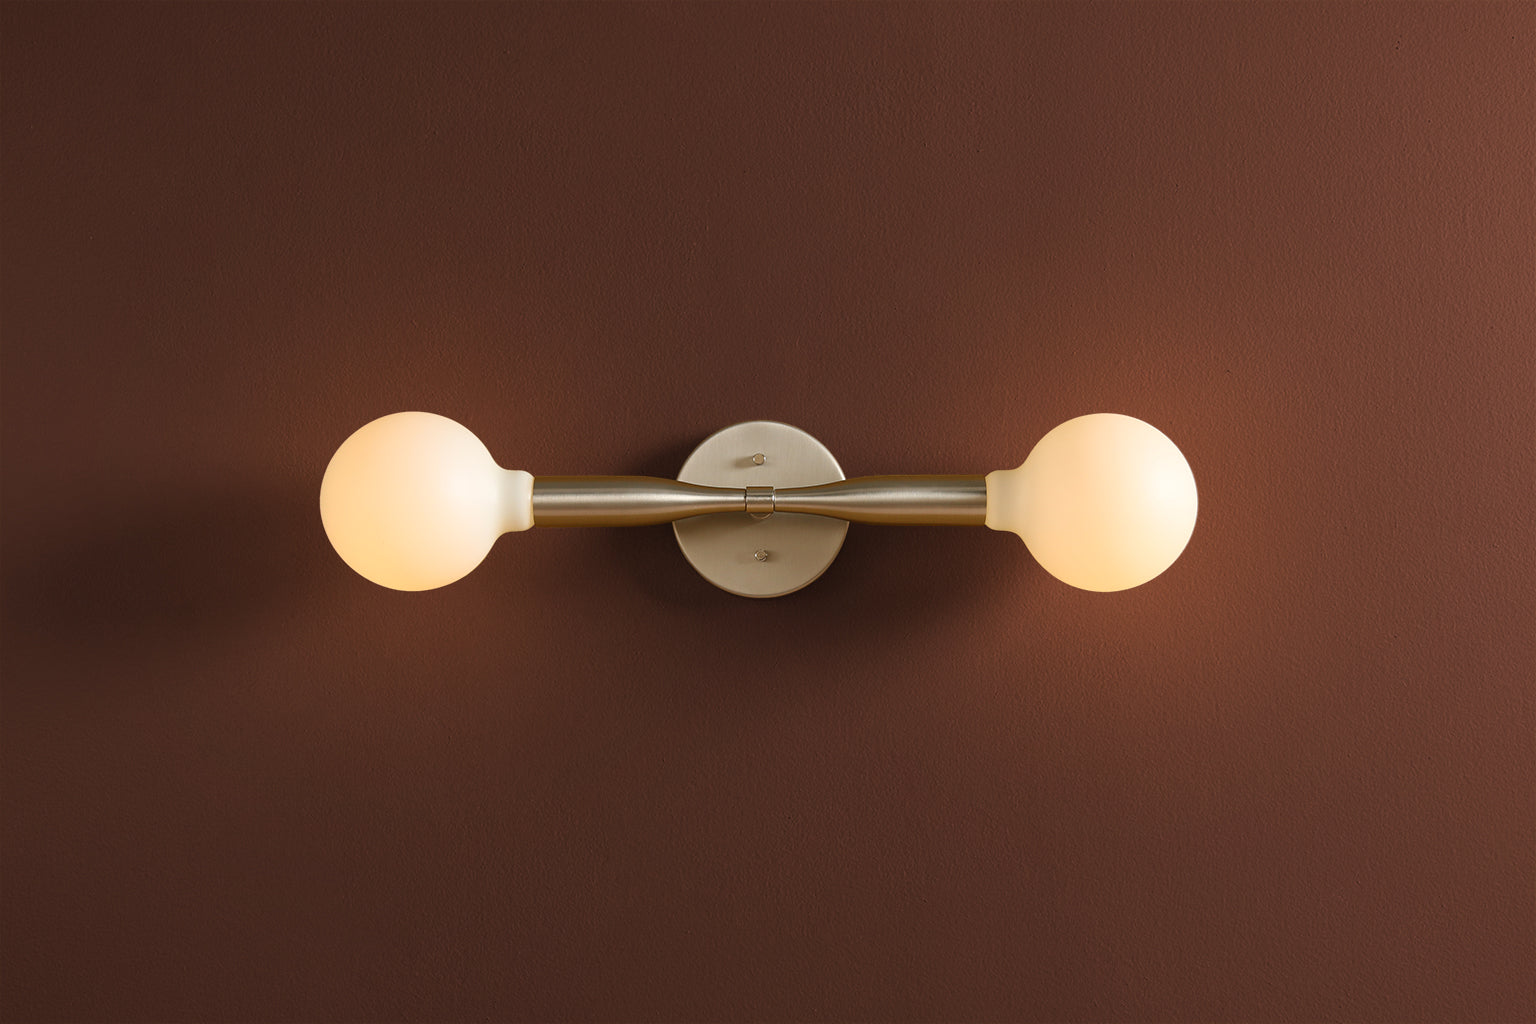 Sorenthia 2 Sconce in Oil Rubbed Brass